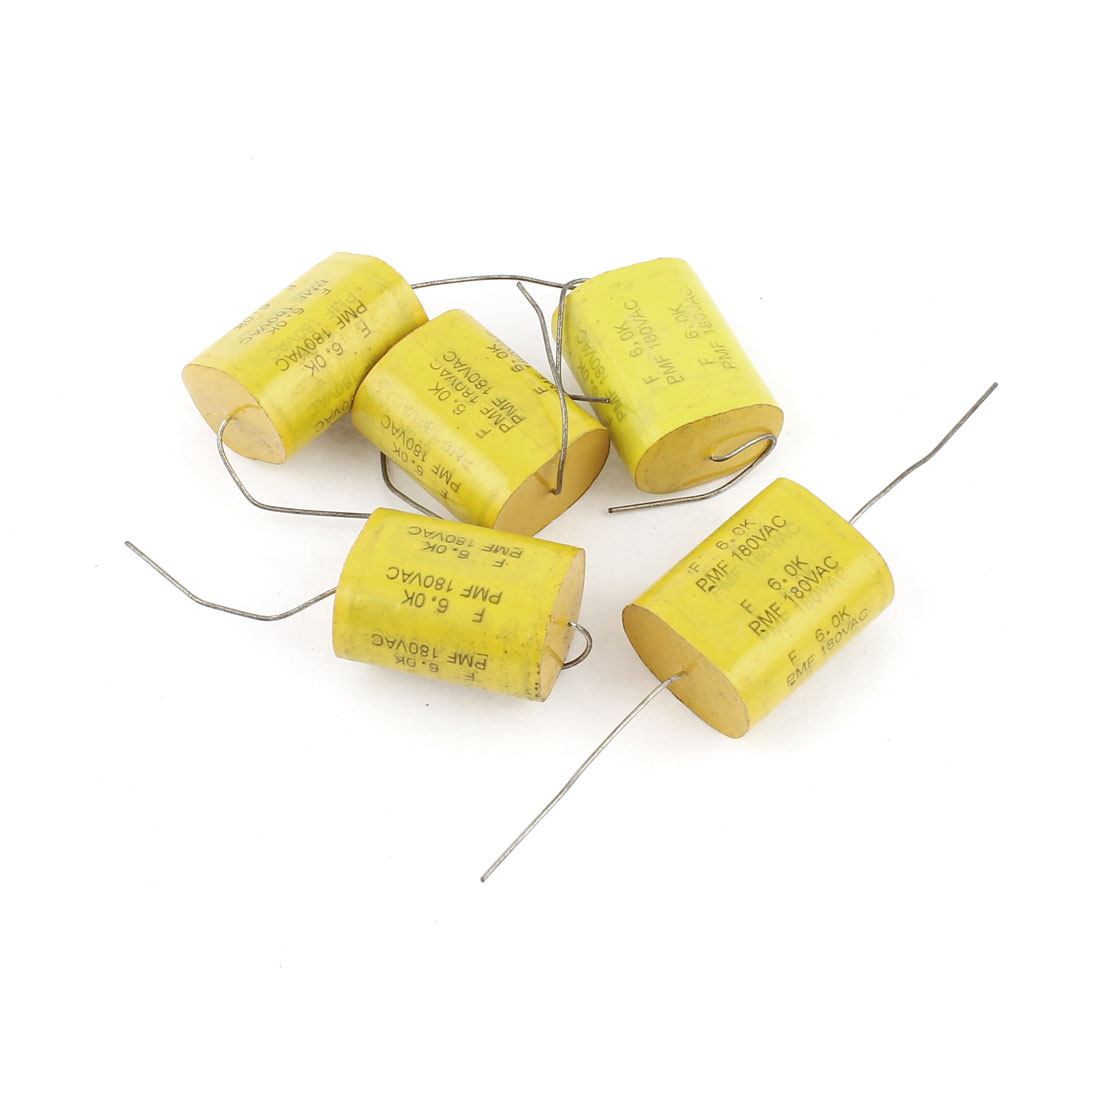 5 Pcs AC 180V 5% 6uf Capacitance Axial Lead Through Hole Metallized Film Capacitor Yellow